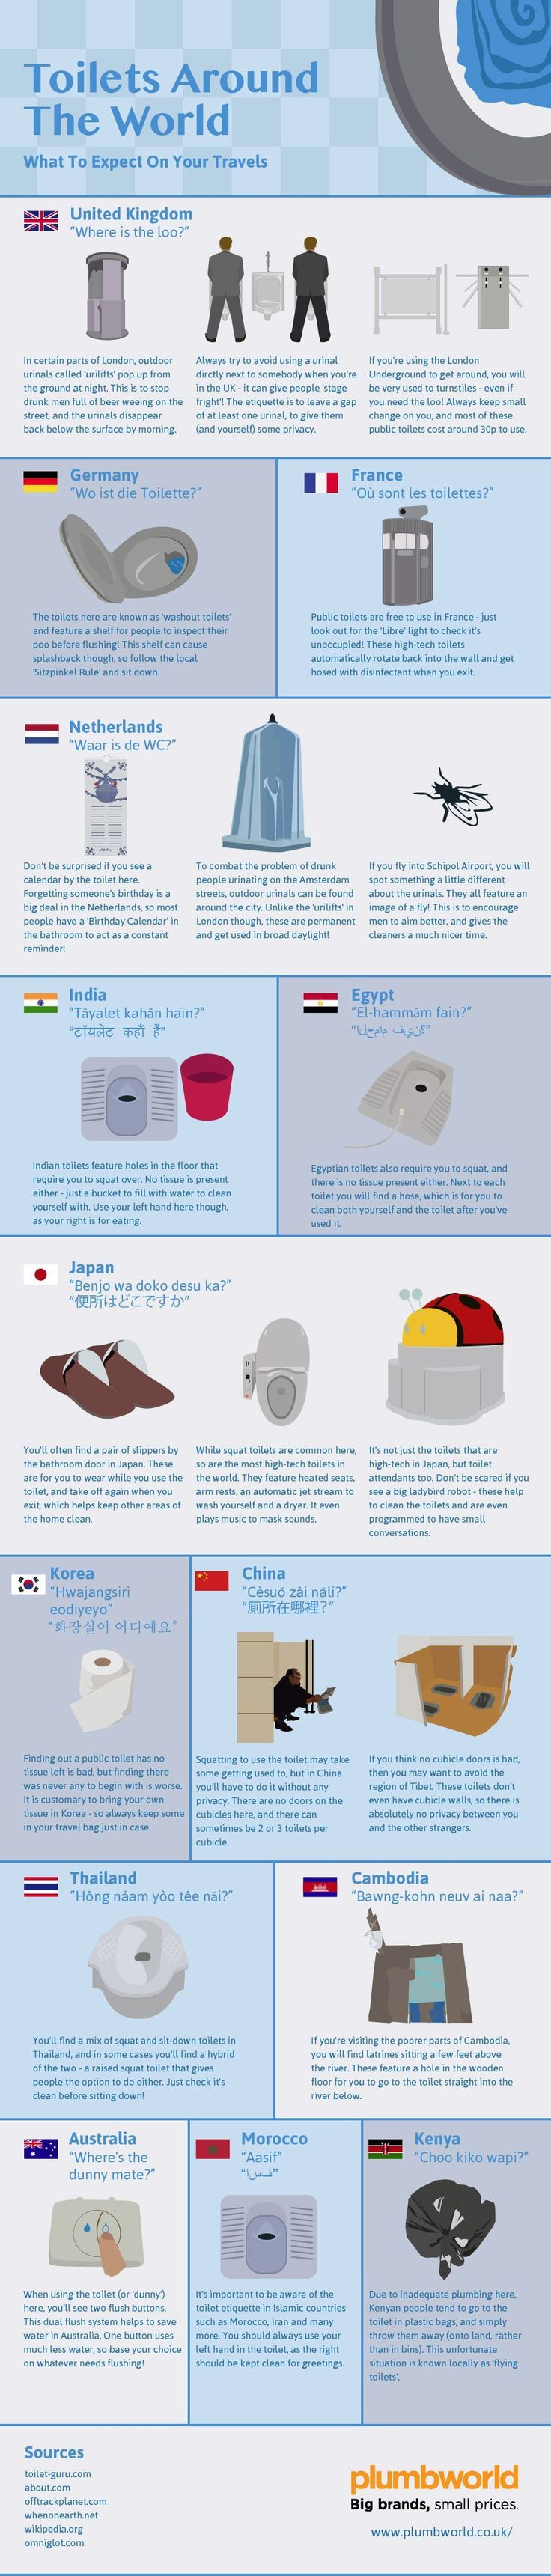 A Brief Look at Toilets around the World #infographic #Travel #Toilets